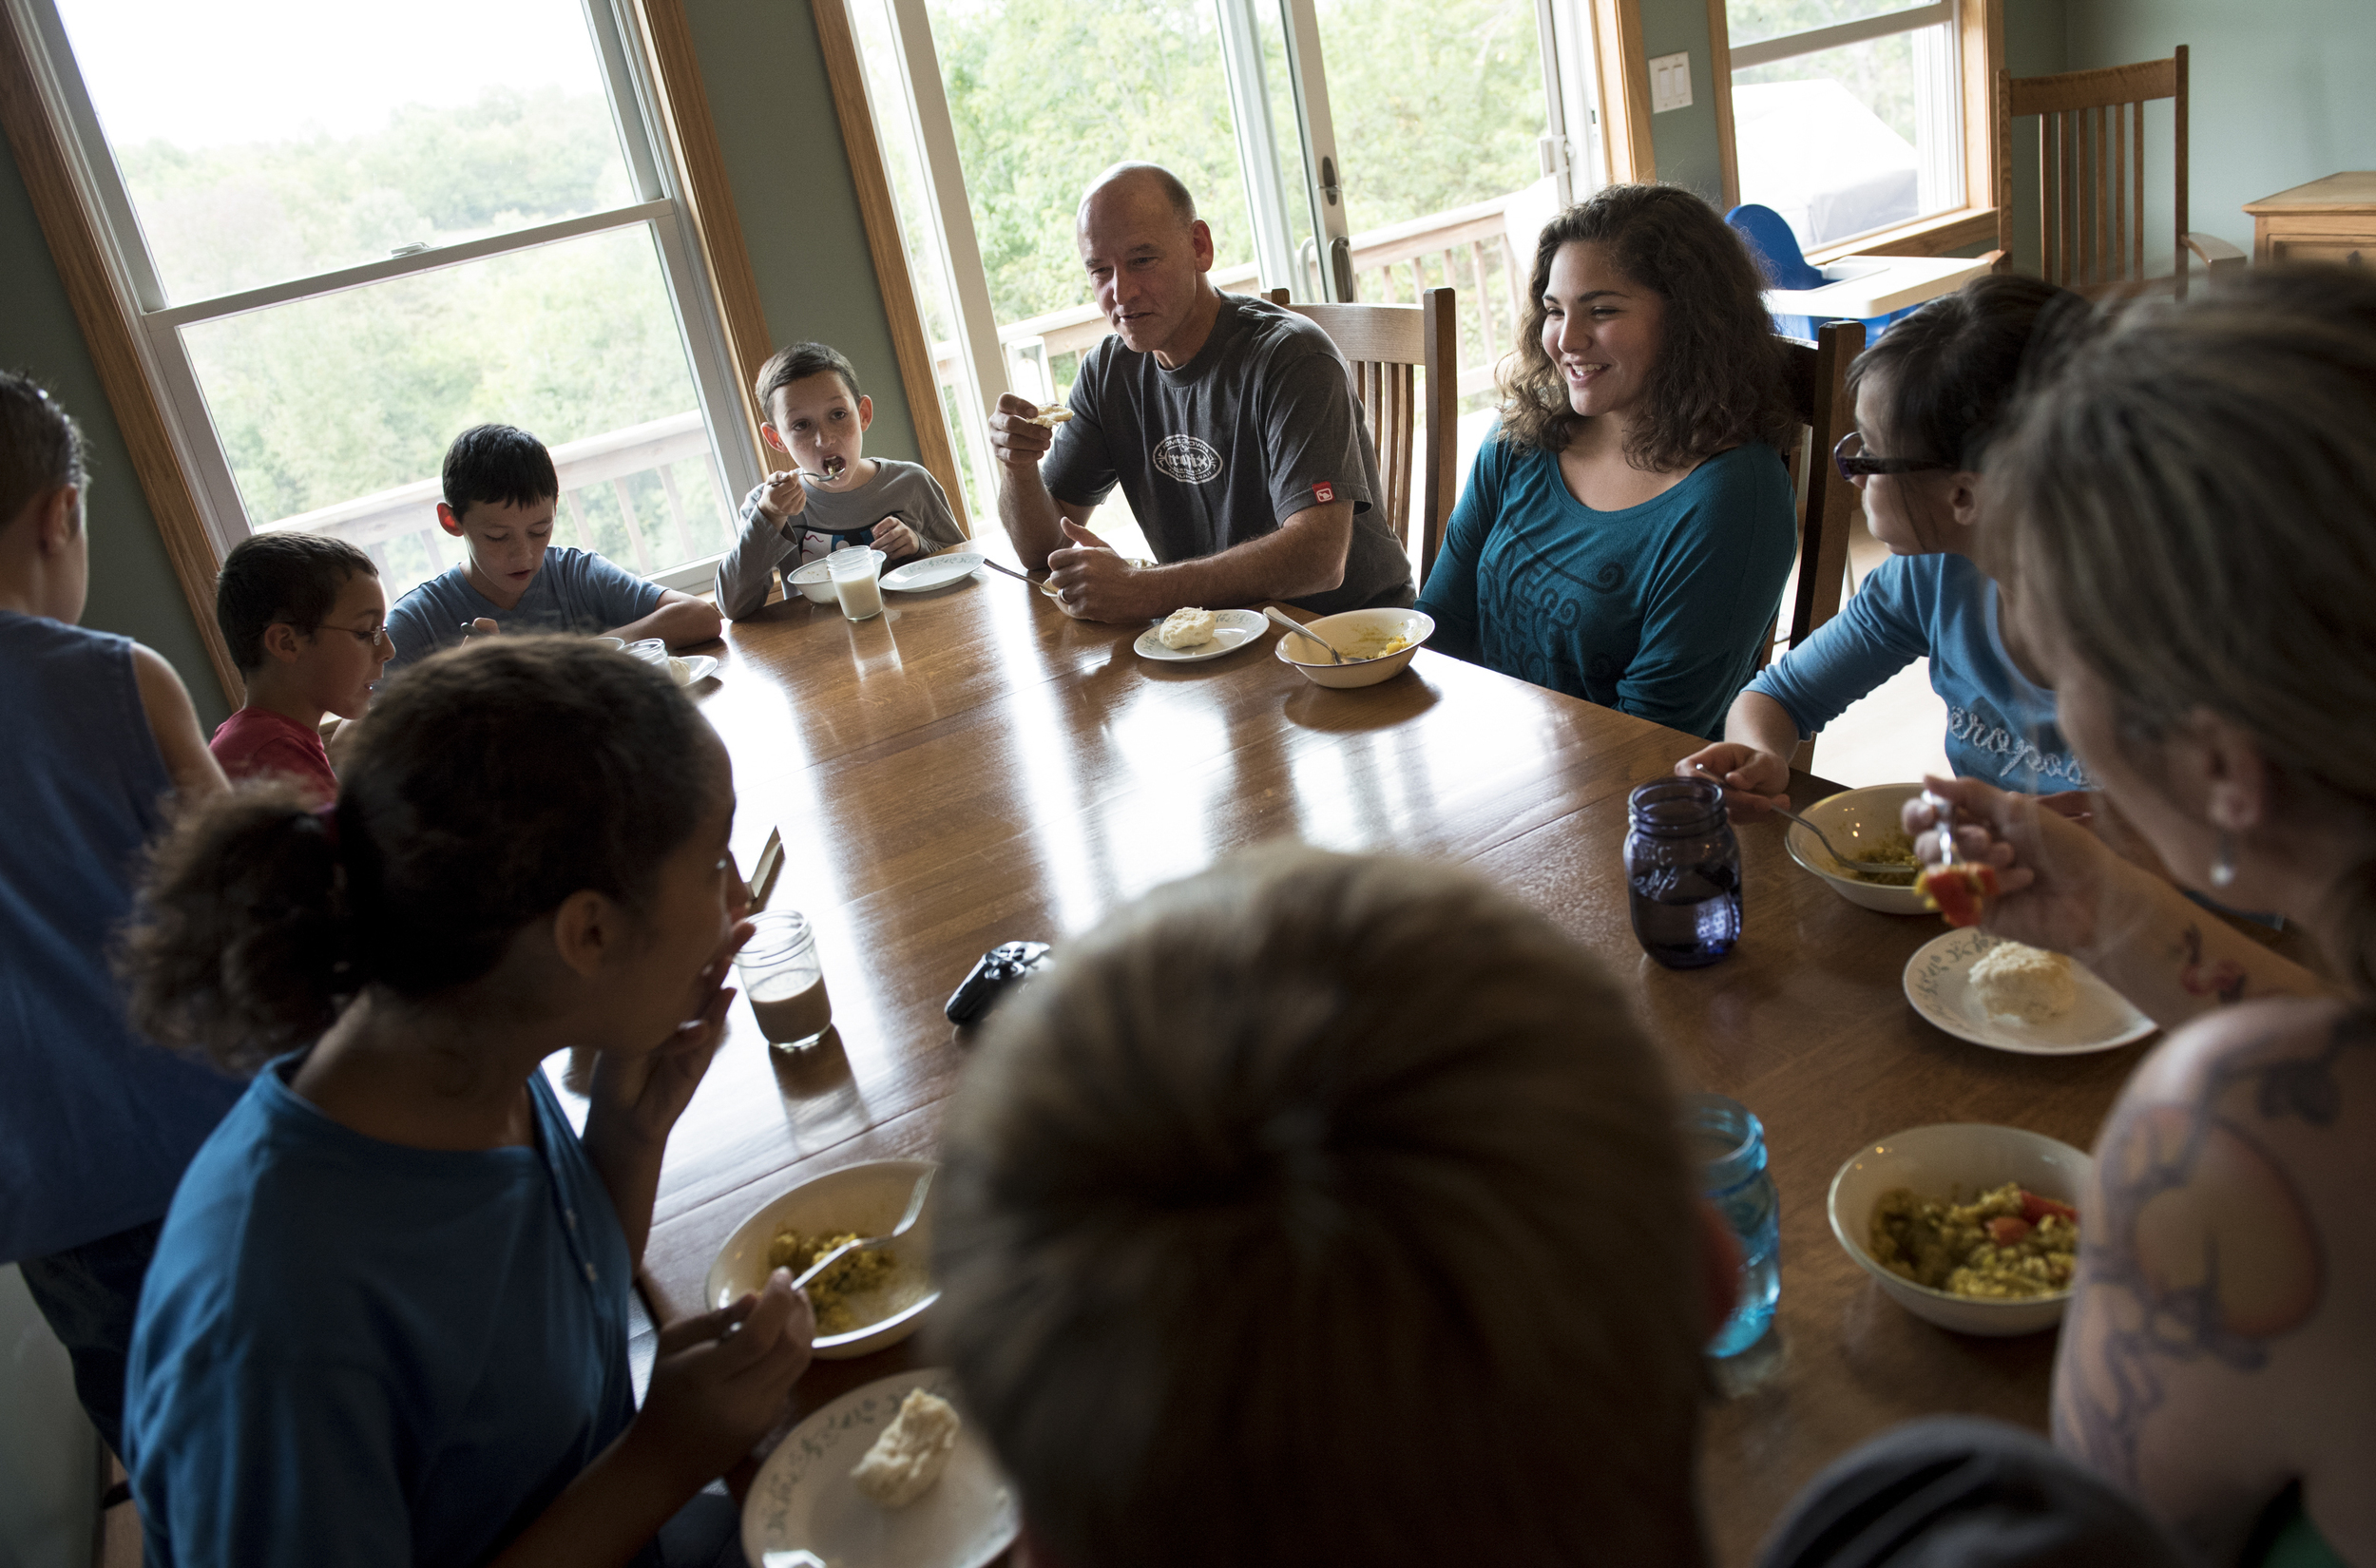 The Fullers sit down to dinner at their home in Athens, Ohio, where they moved from there home state of Oregon to start fresh for their eight children, seven of whom are adopted.